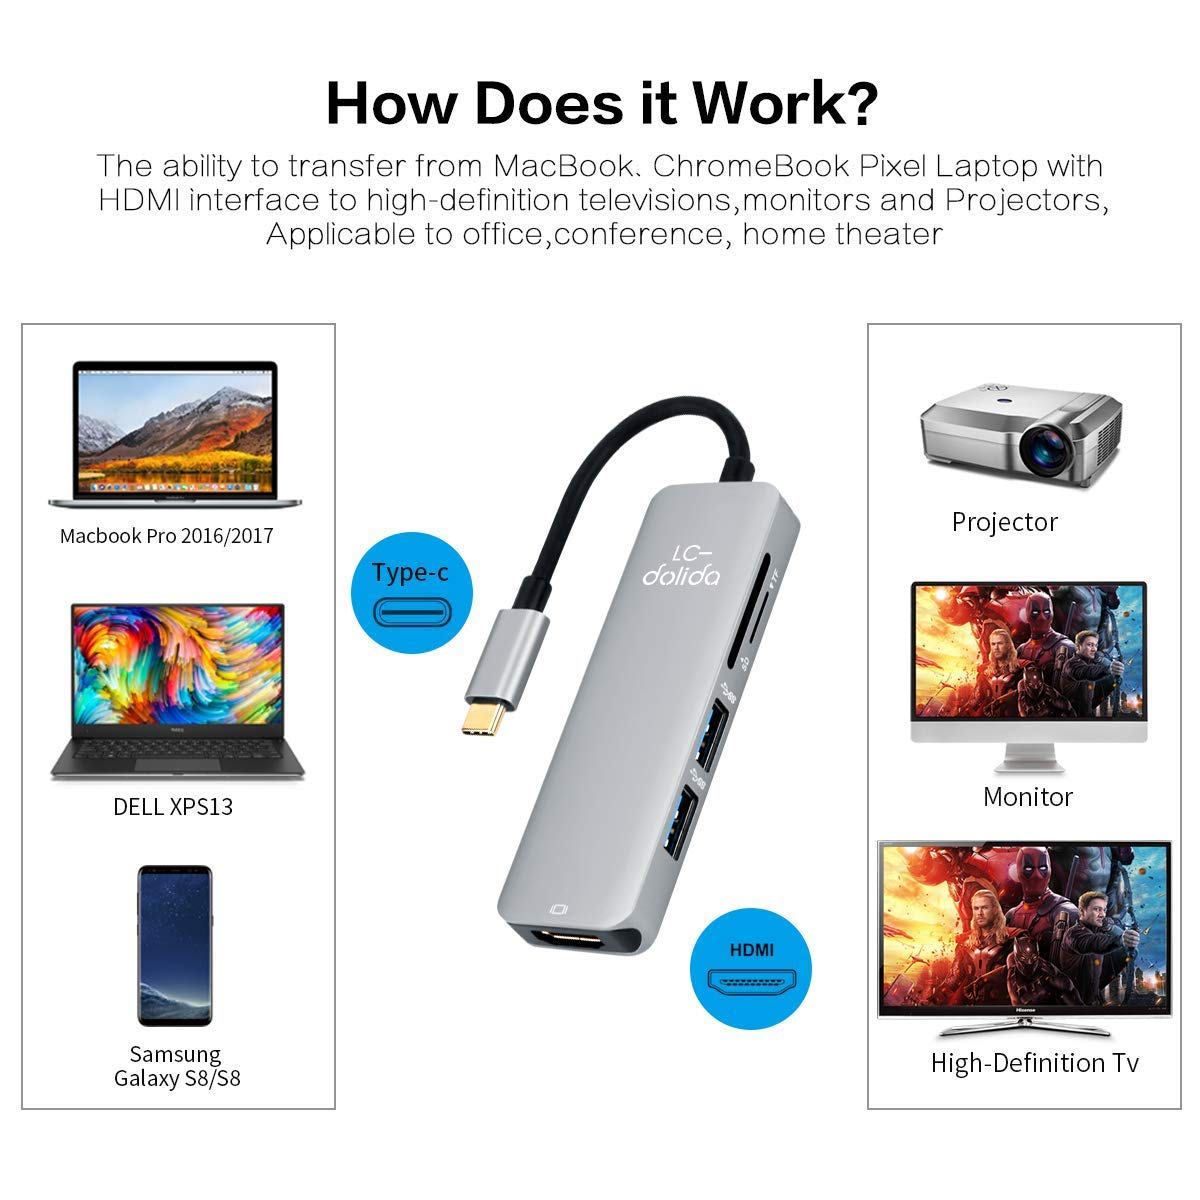 USB C Hub, LC-dolida Type C to HDMI 4K Adapter with 2 USB 3.0 Ports SD/TF Card Reader for New MacBook/MacBook Pro 2016/2017,HP Spectre X360/Dell XPS,Samsung Galaxy S8 and more